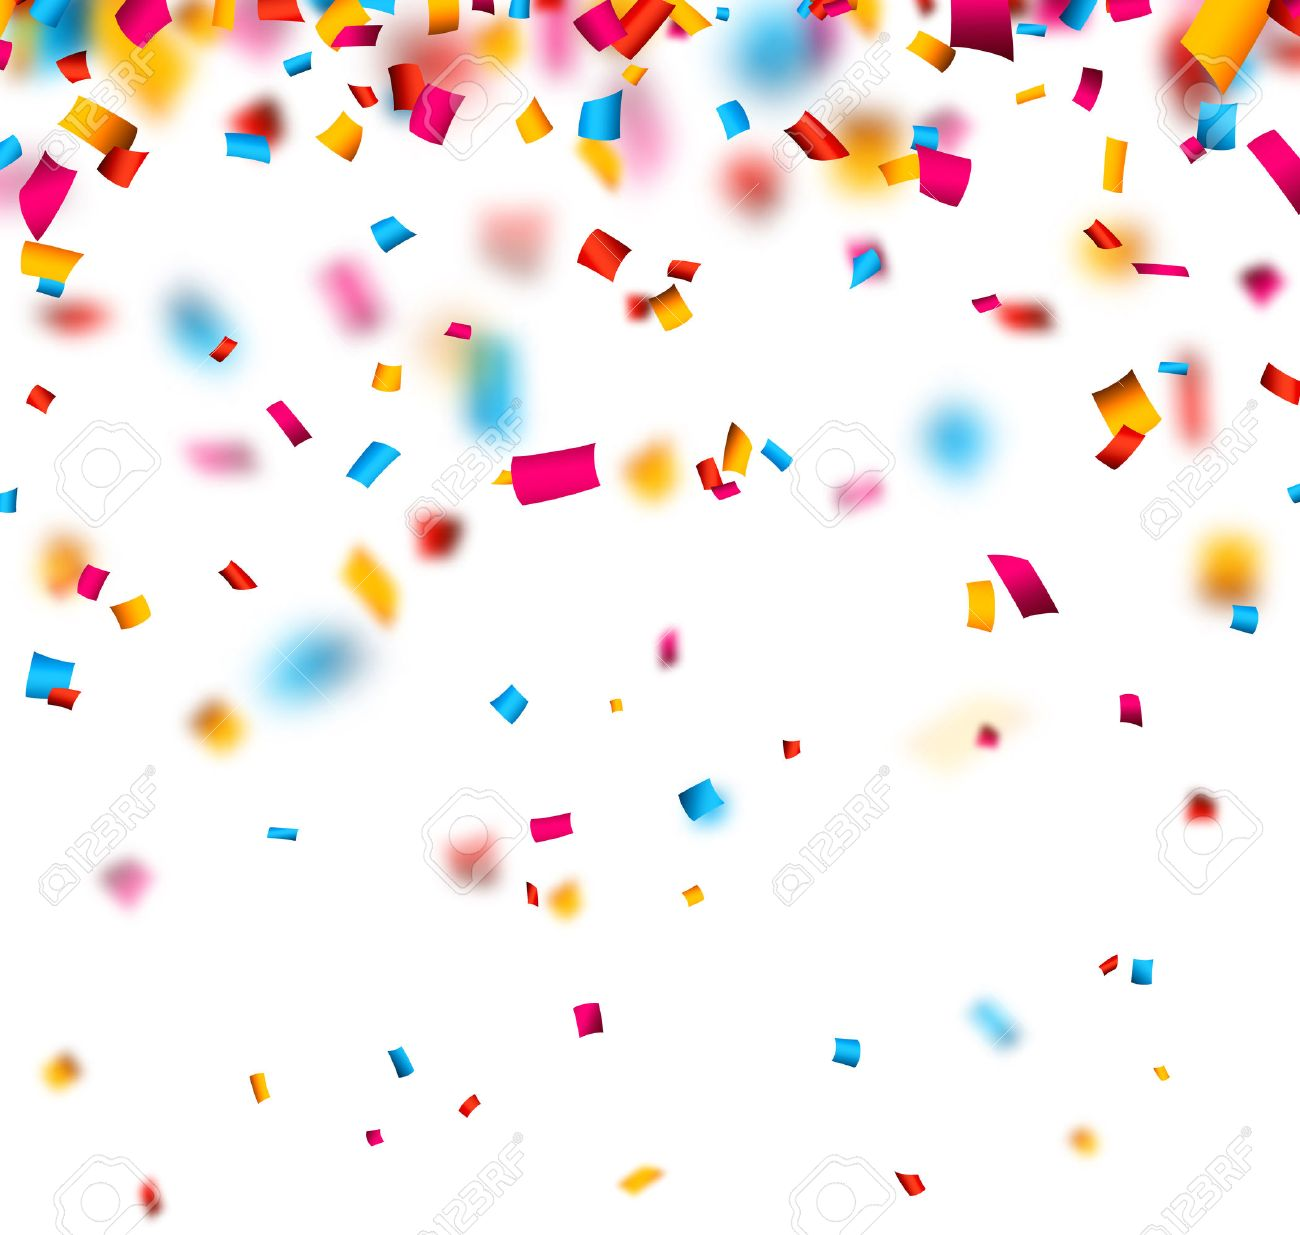 colorful celebration background with